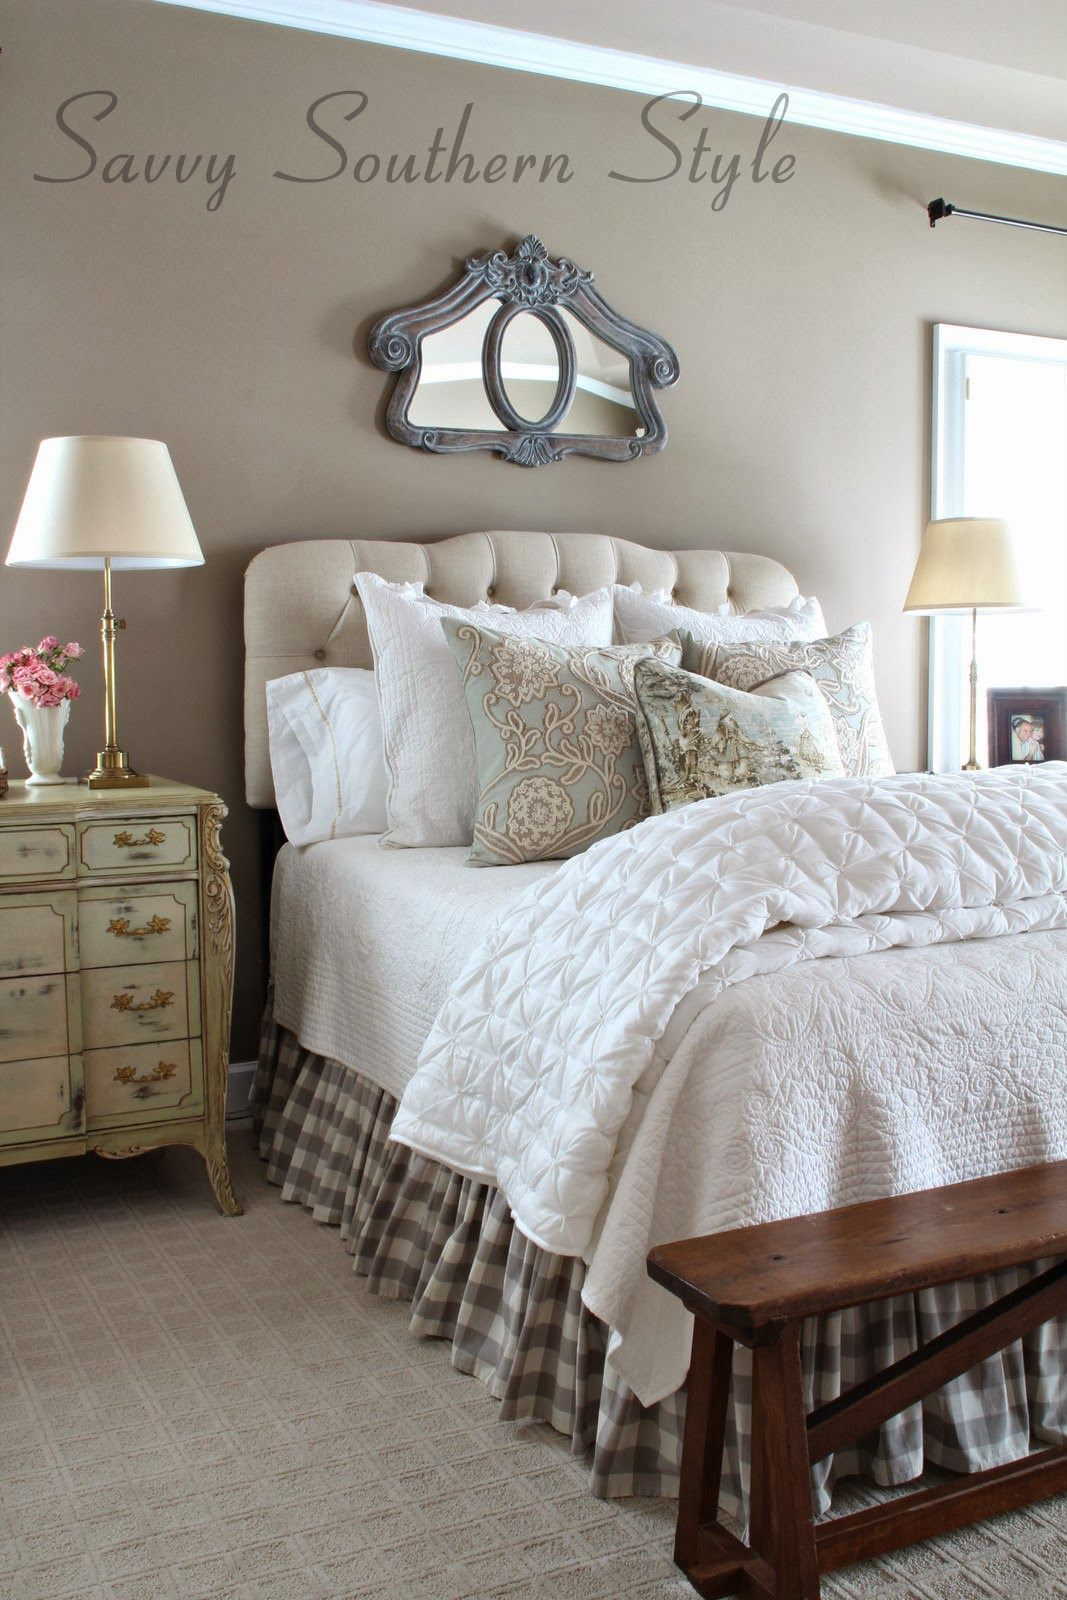 Adding French Farmhouse Style In The Master French Country Decorating Bedroom Remodel Bedroom Country Bedroom